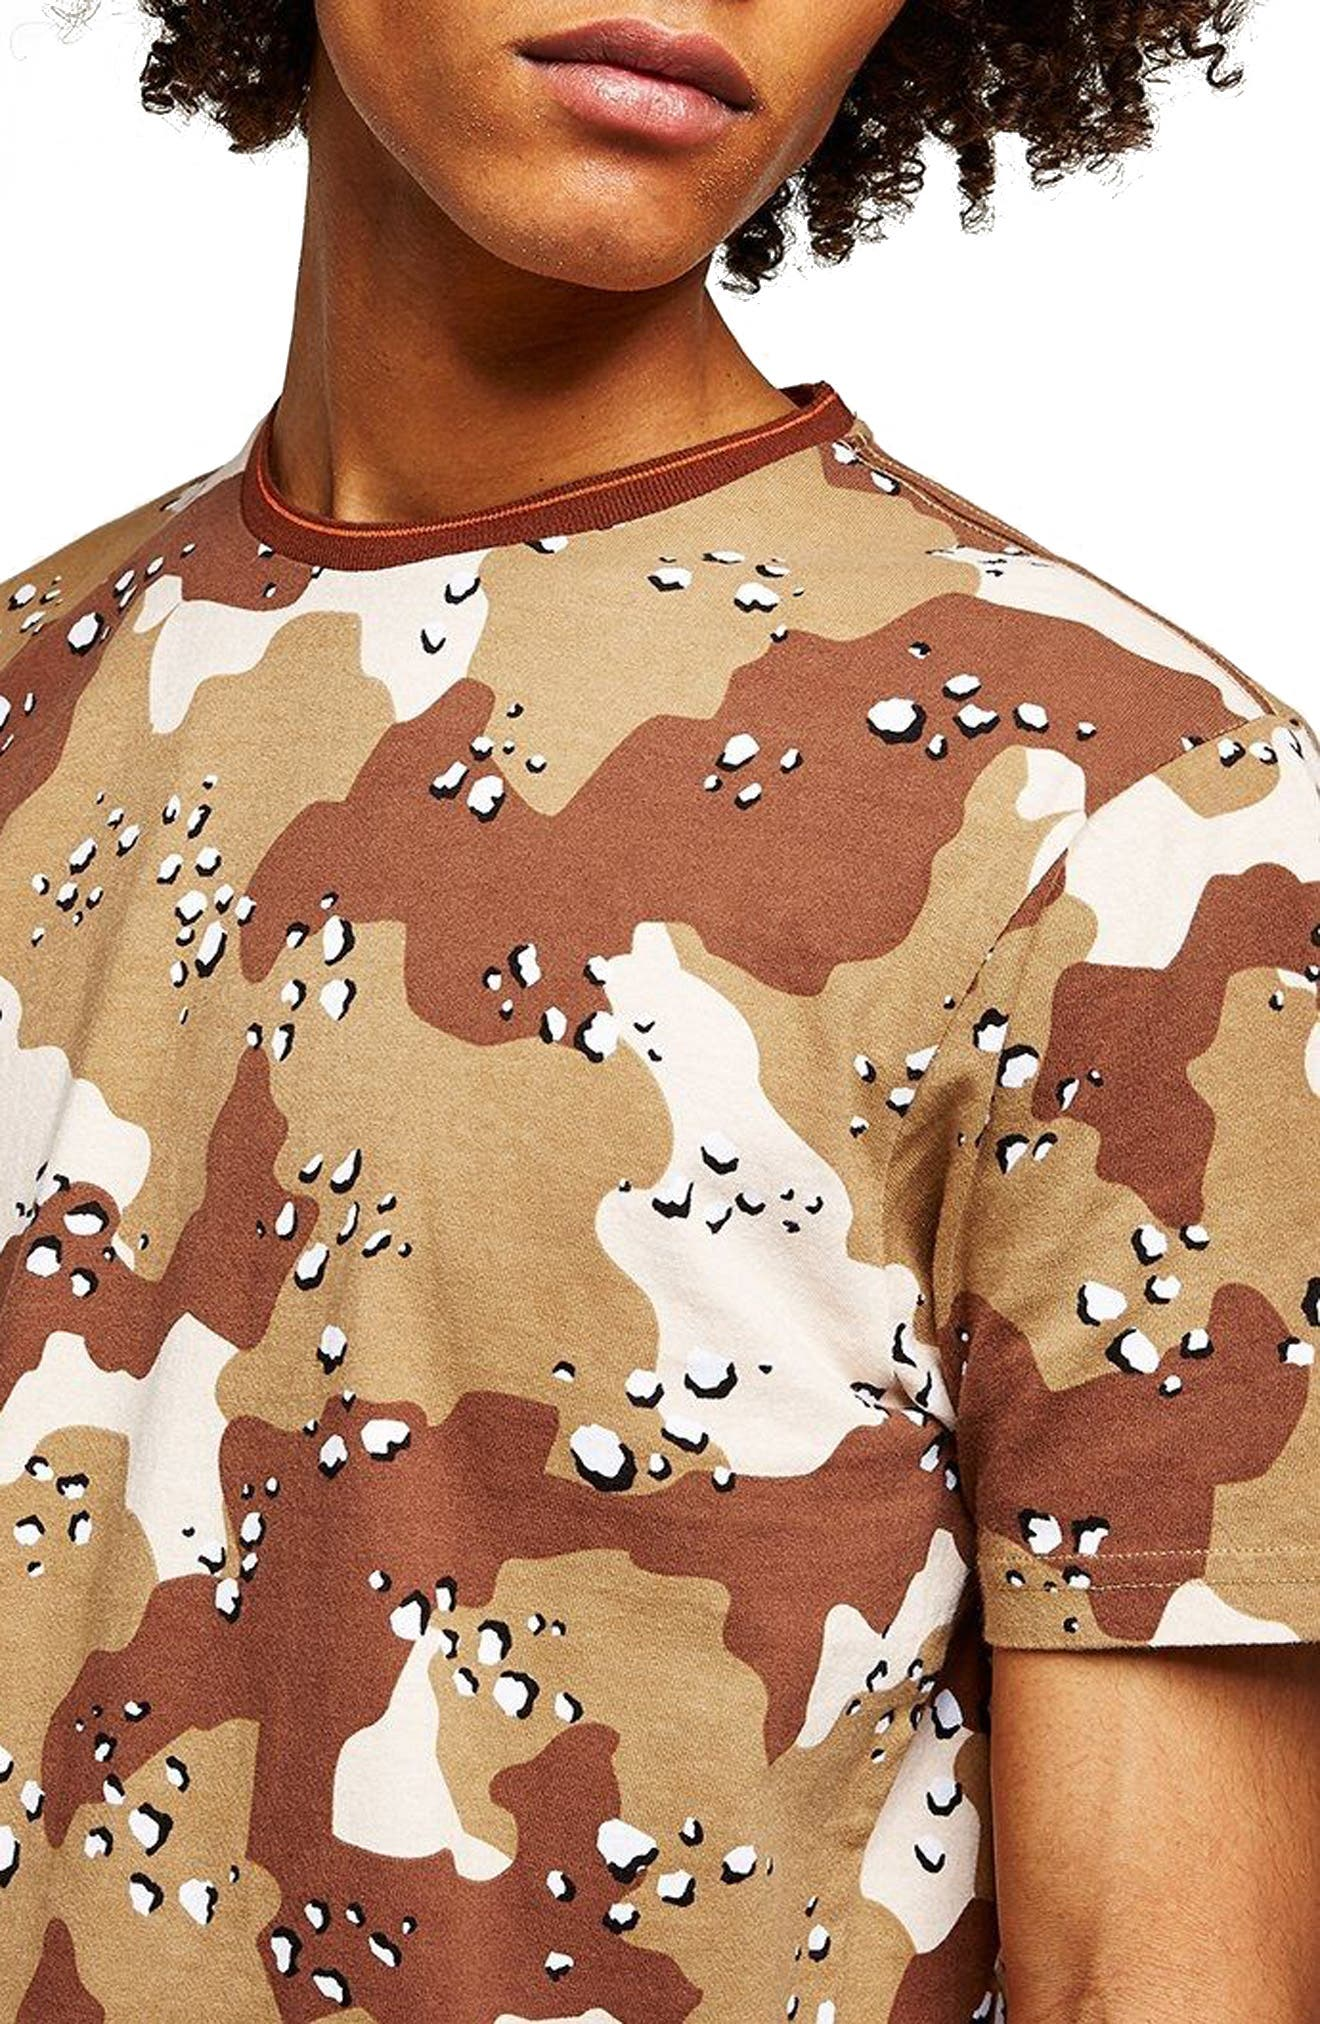 Camouflage Graphic T-Shirt,                         Main,                         color, 250